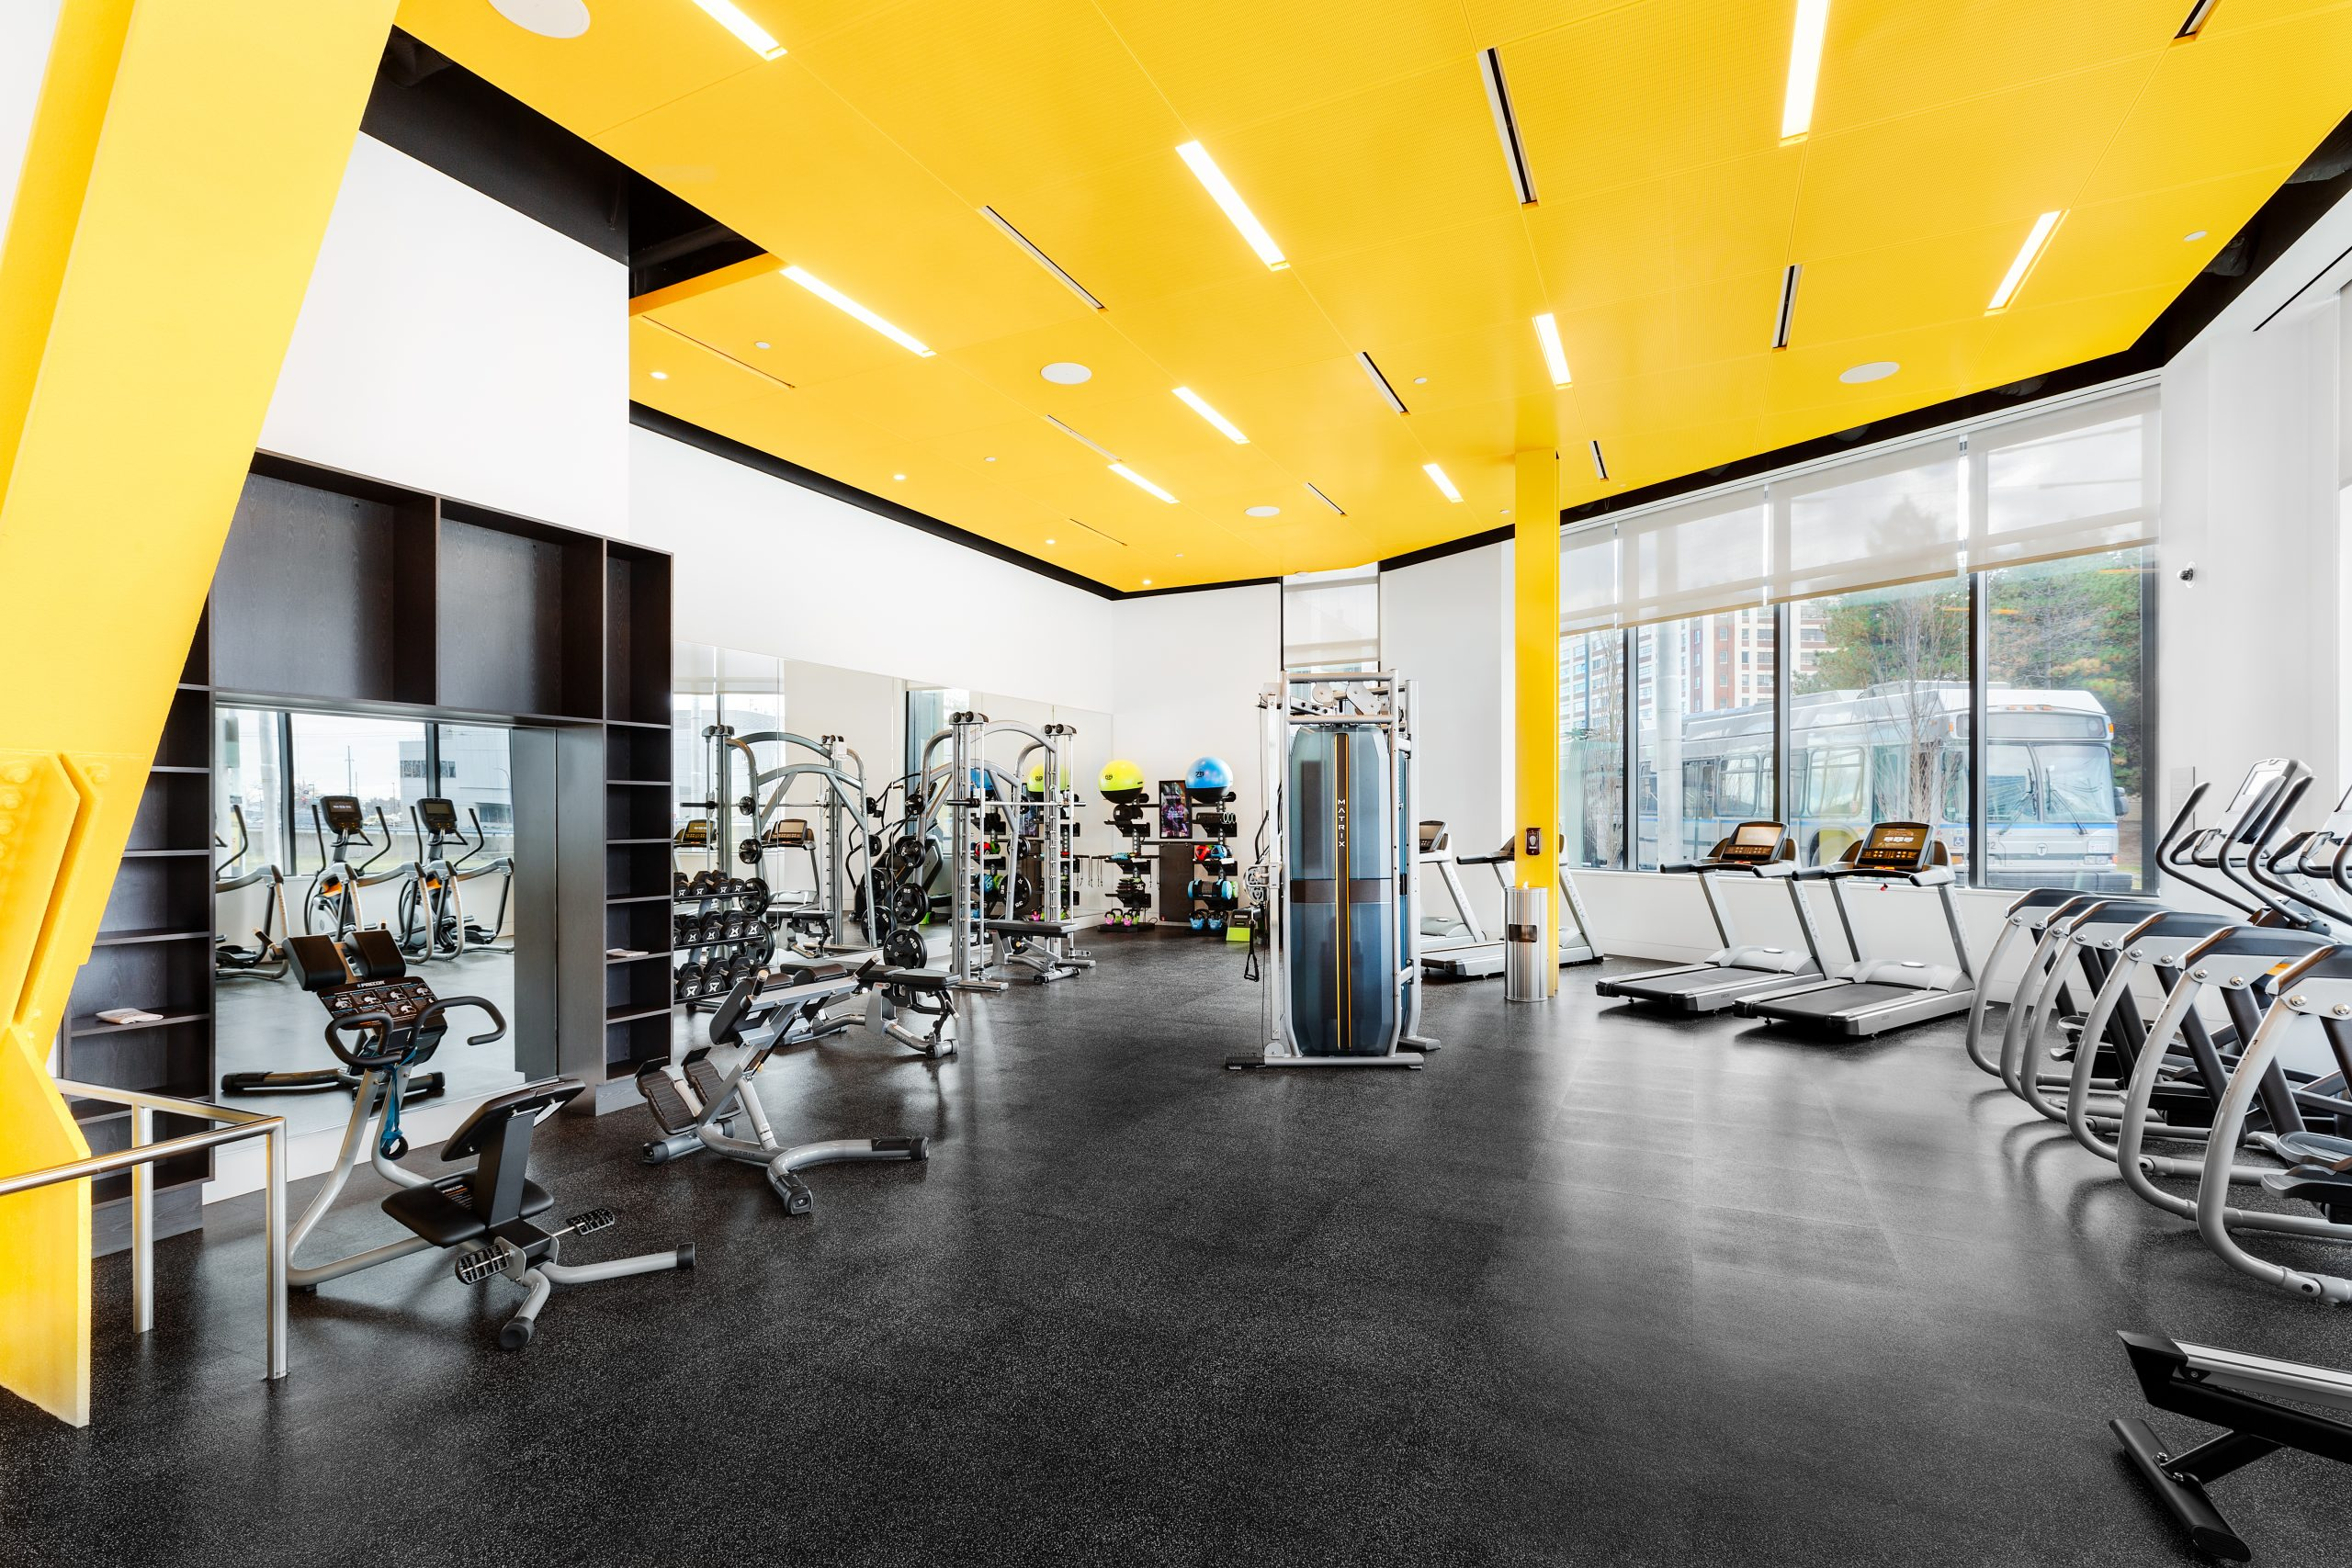 Gym with yellow ceiling and multiple exercise machines